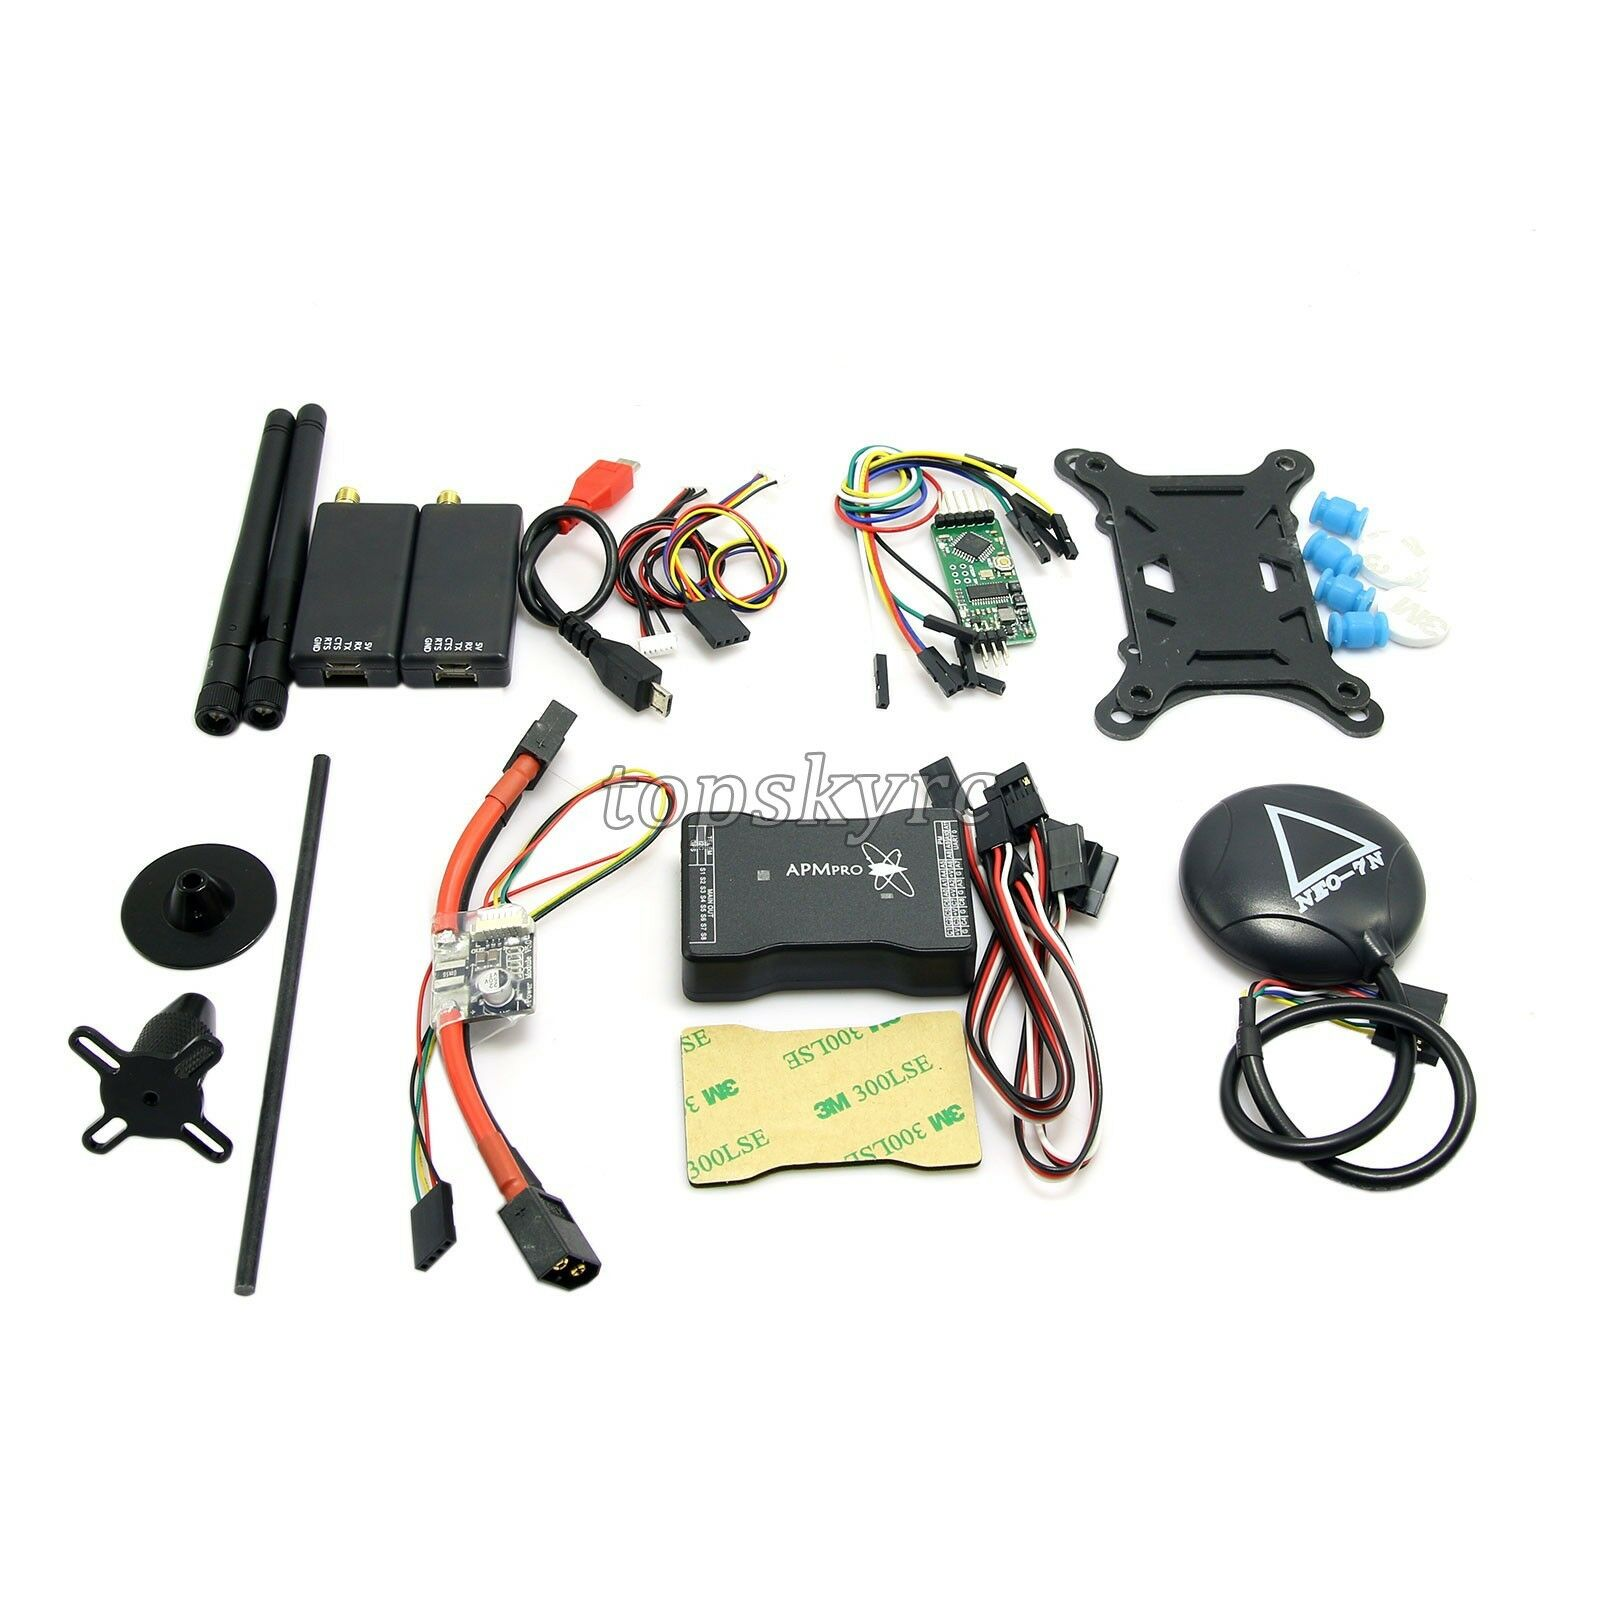 Mini APM Pro Flight Control with 915Mhz Telemetry & 7N GPS & PM & OSD for FPV